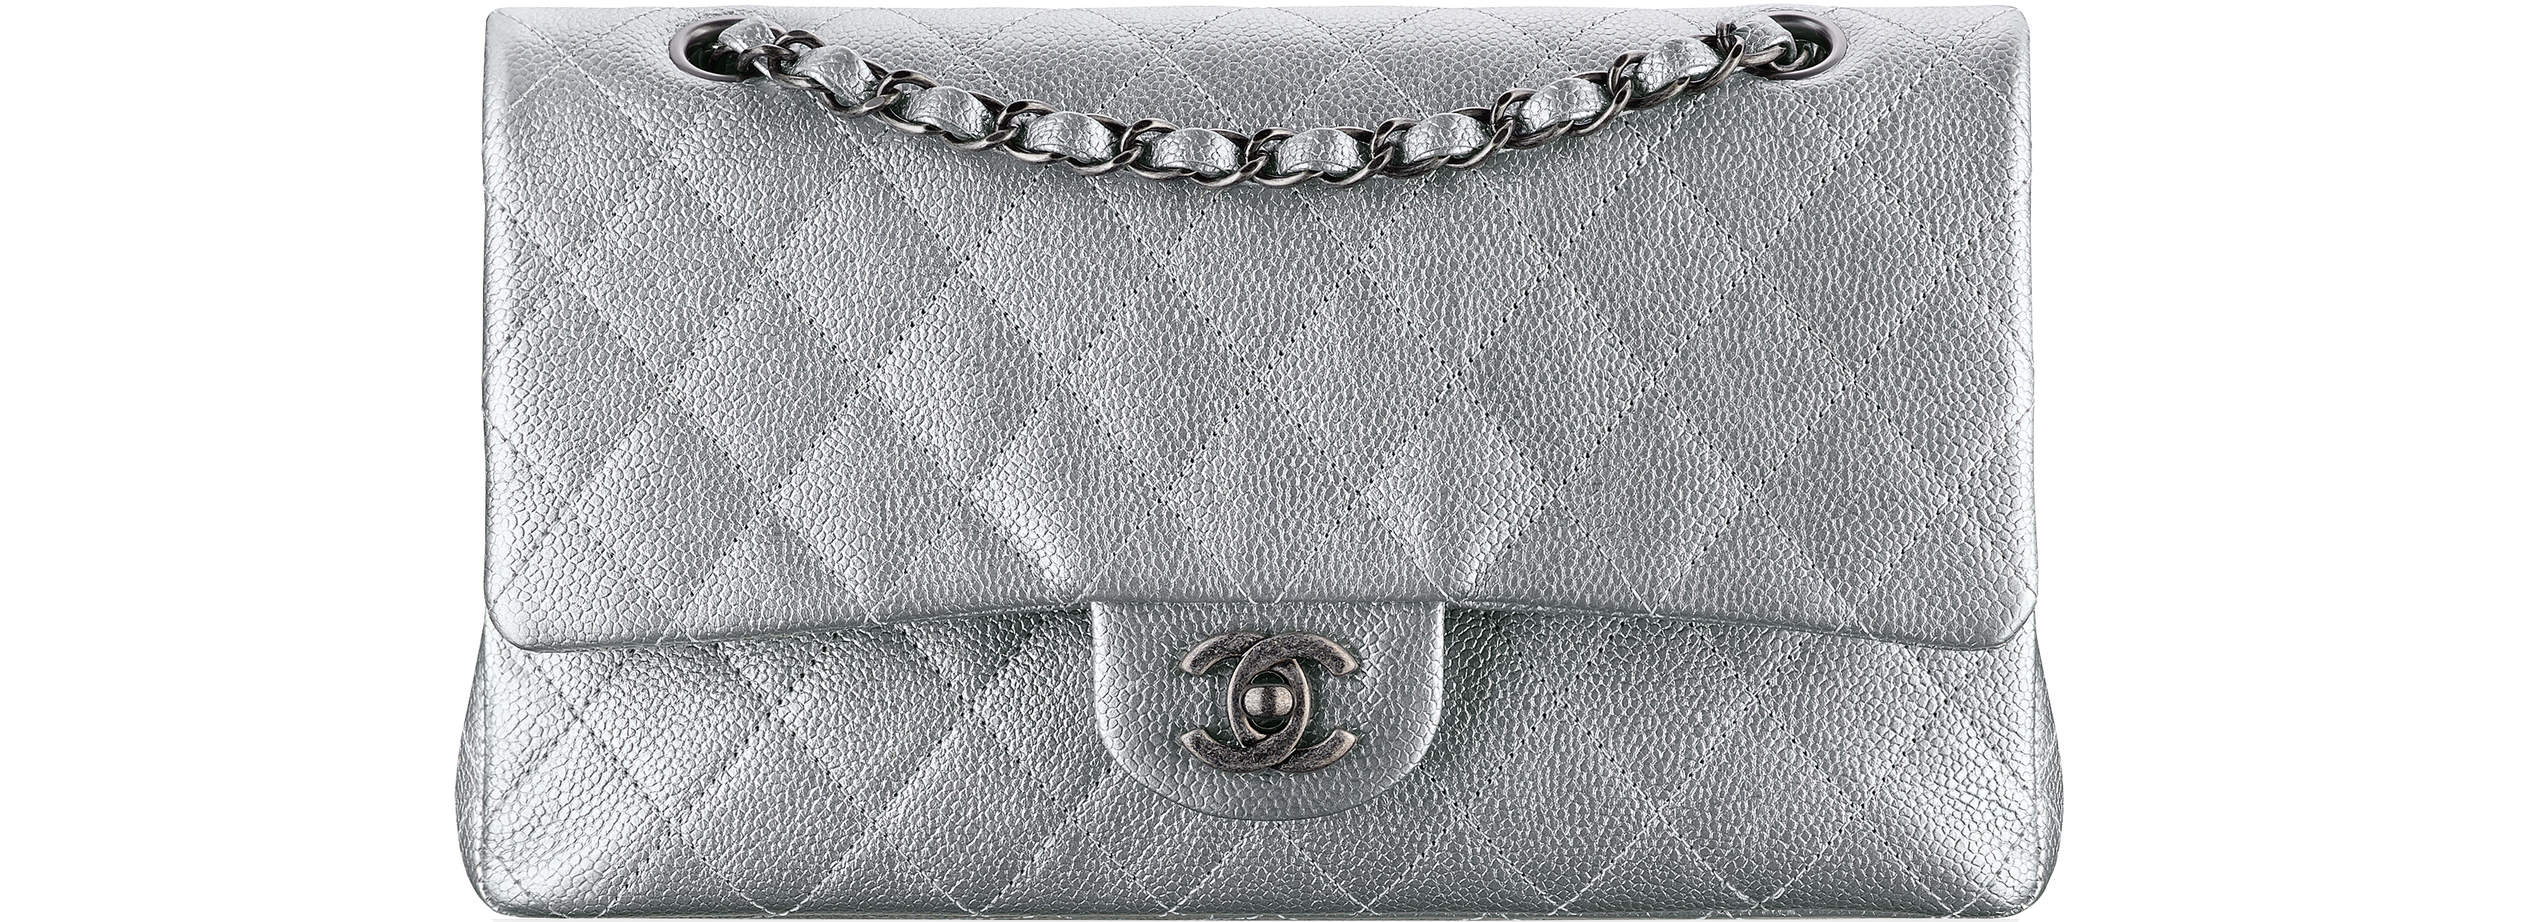 Chanel spring summer 2017 classic flap bag silver